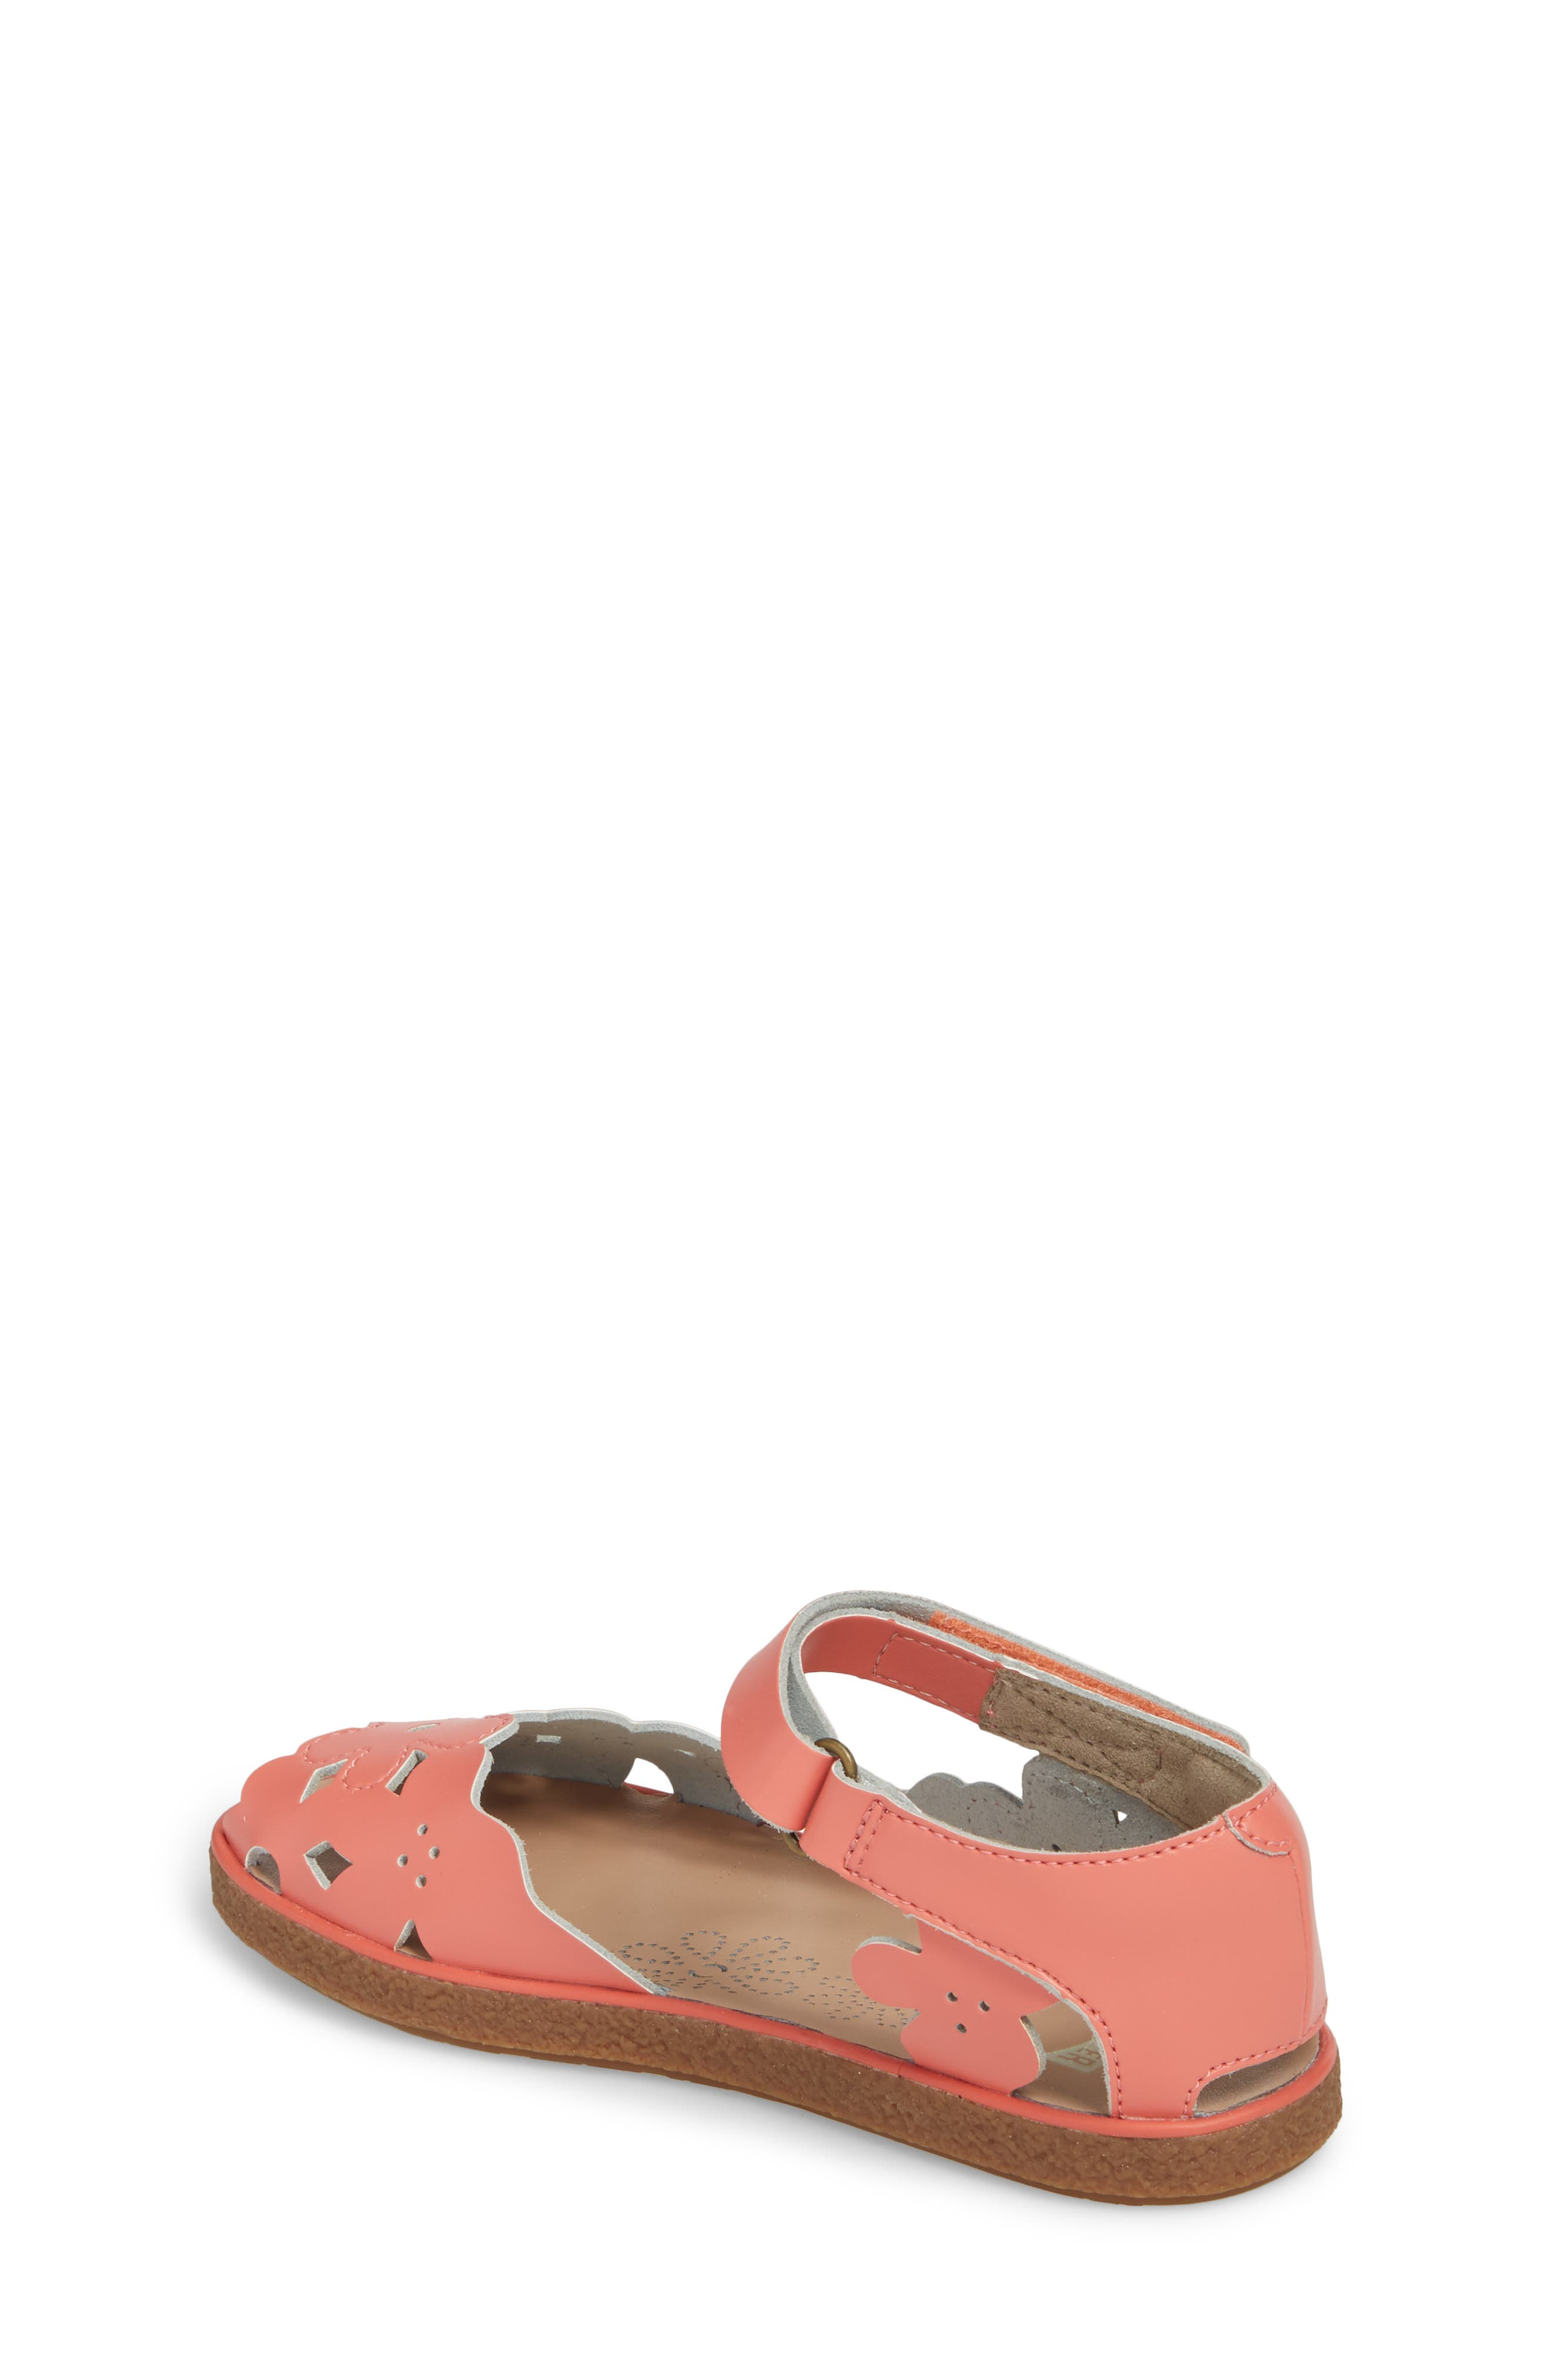 Twins Perforated Sandal,                             Alternate thumbnail 2, color,                             Pink